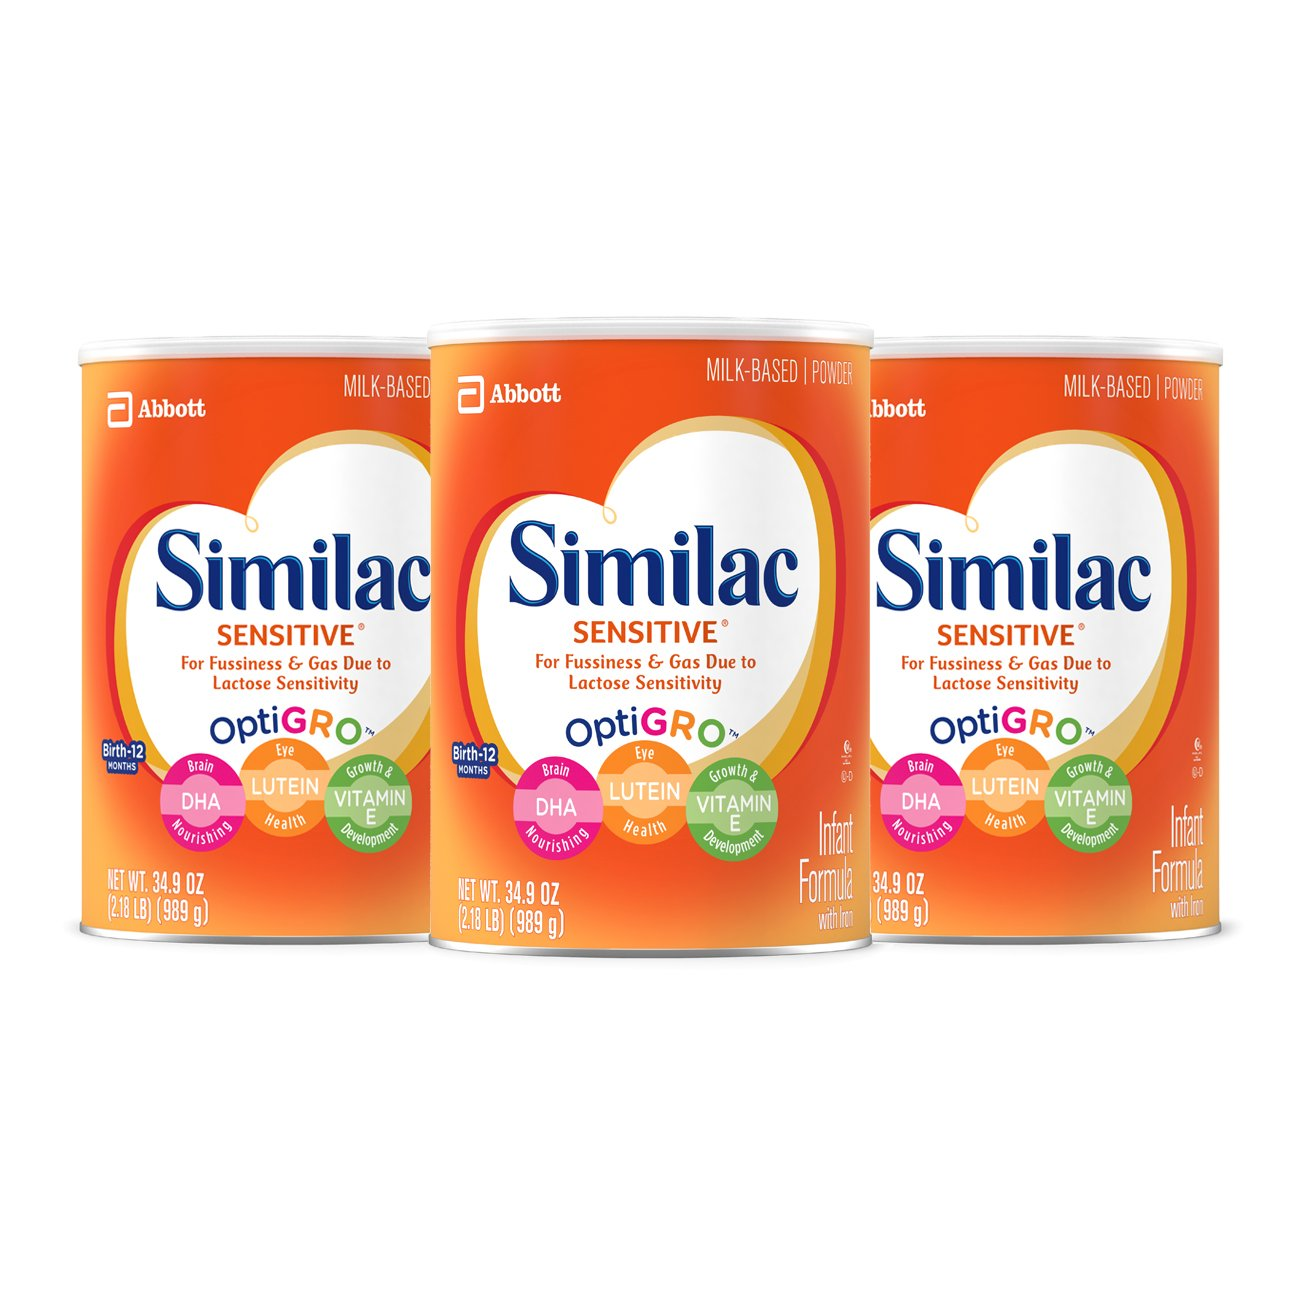 Similac Sensitive Infant Formula with Iron, For Fussiness and Gas, One Month's Supply, Baby Formula, Powder, 2.18 lb (Pack of 3) One Month' s Supply 070074644400